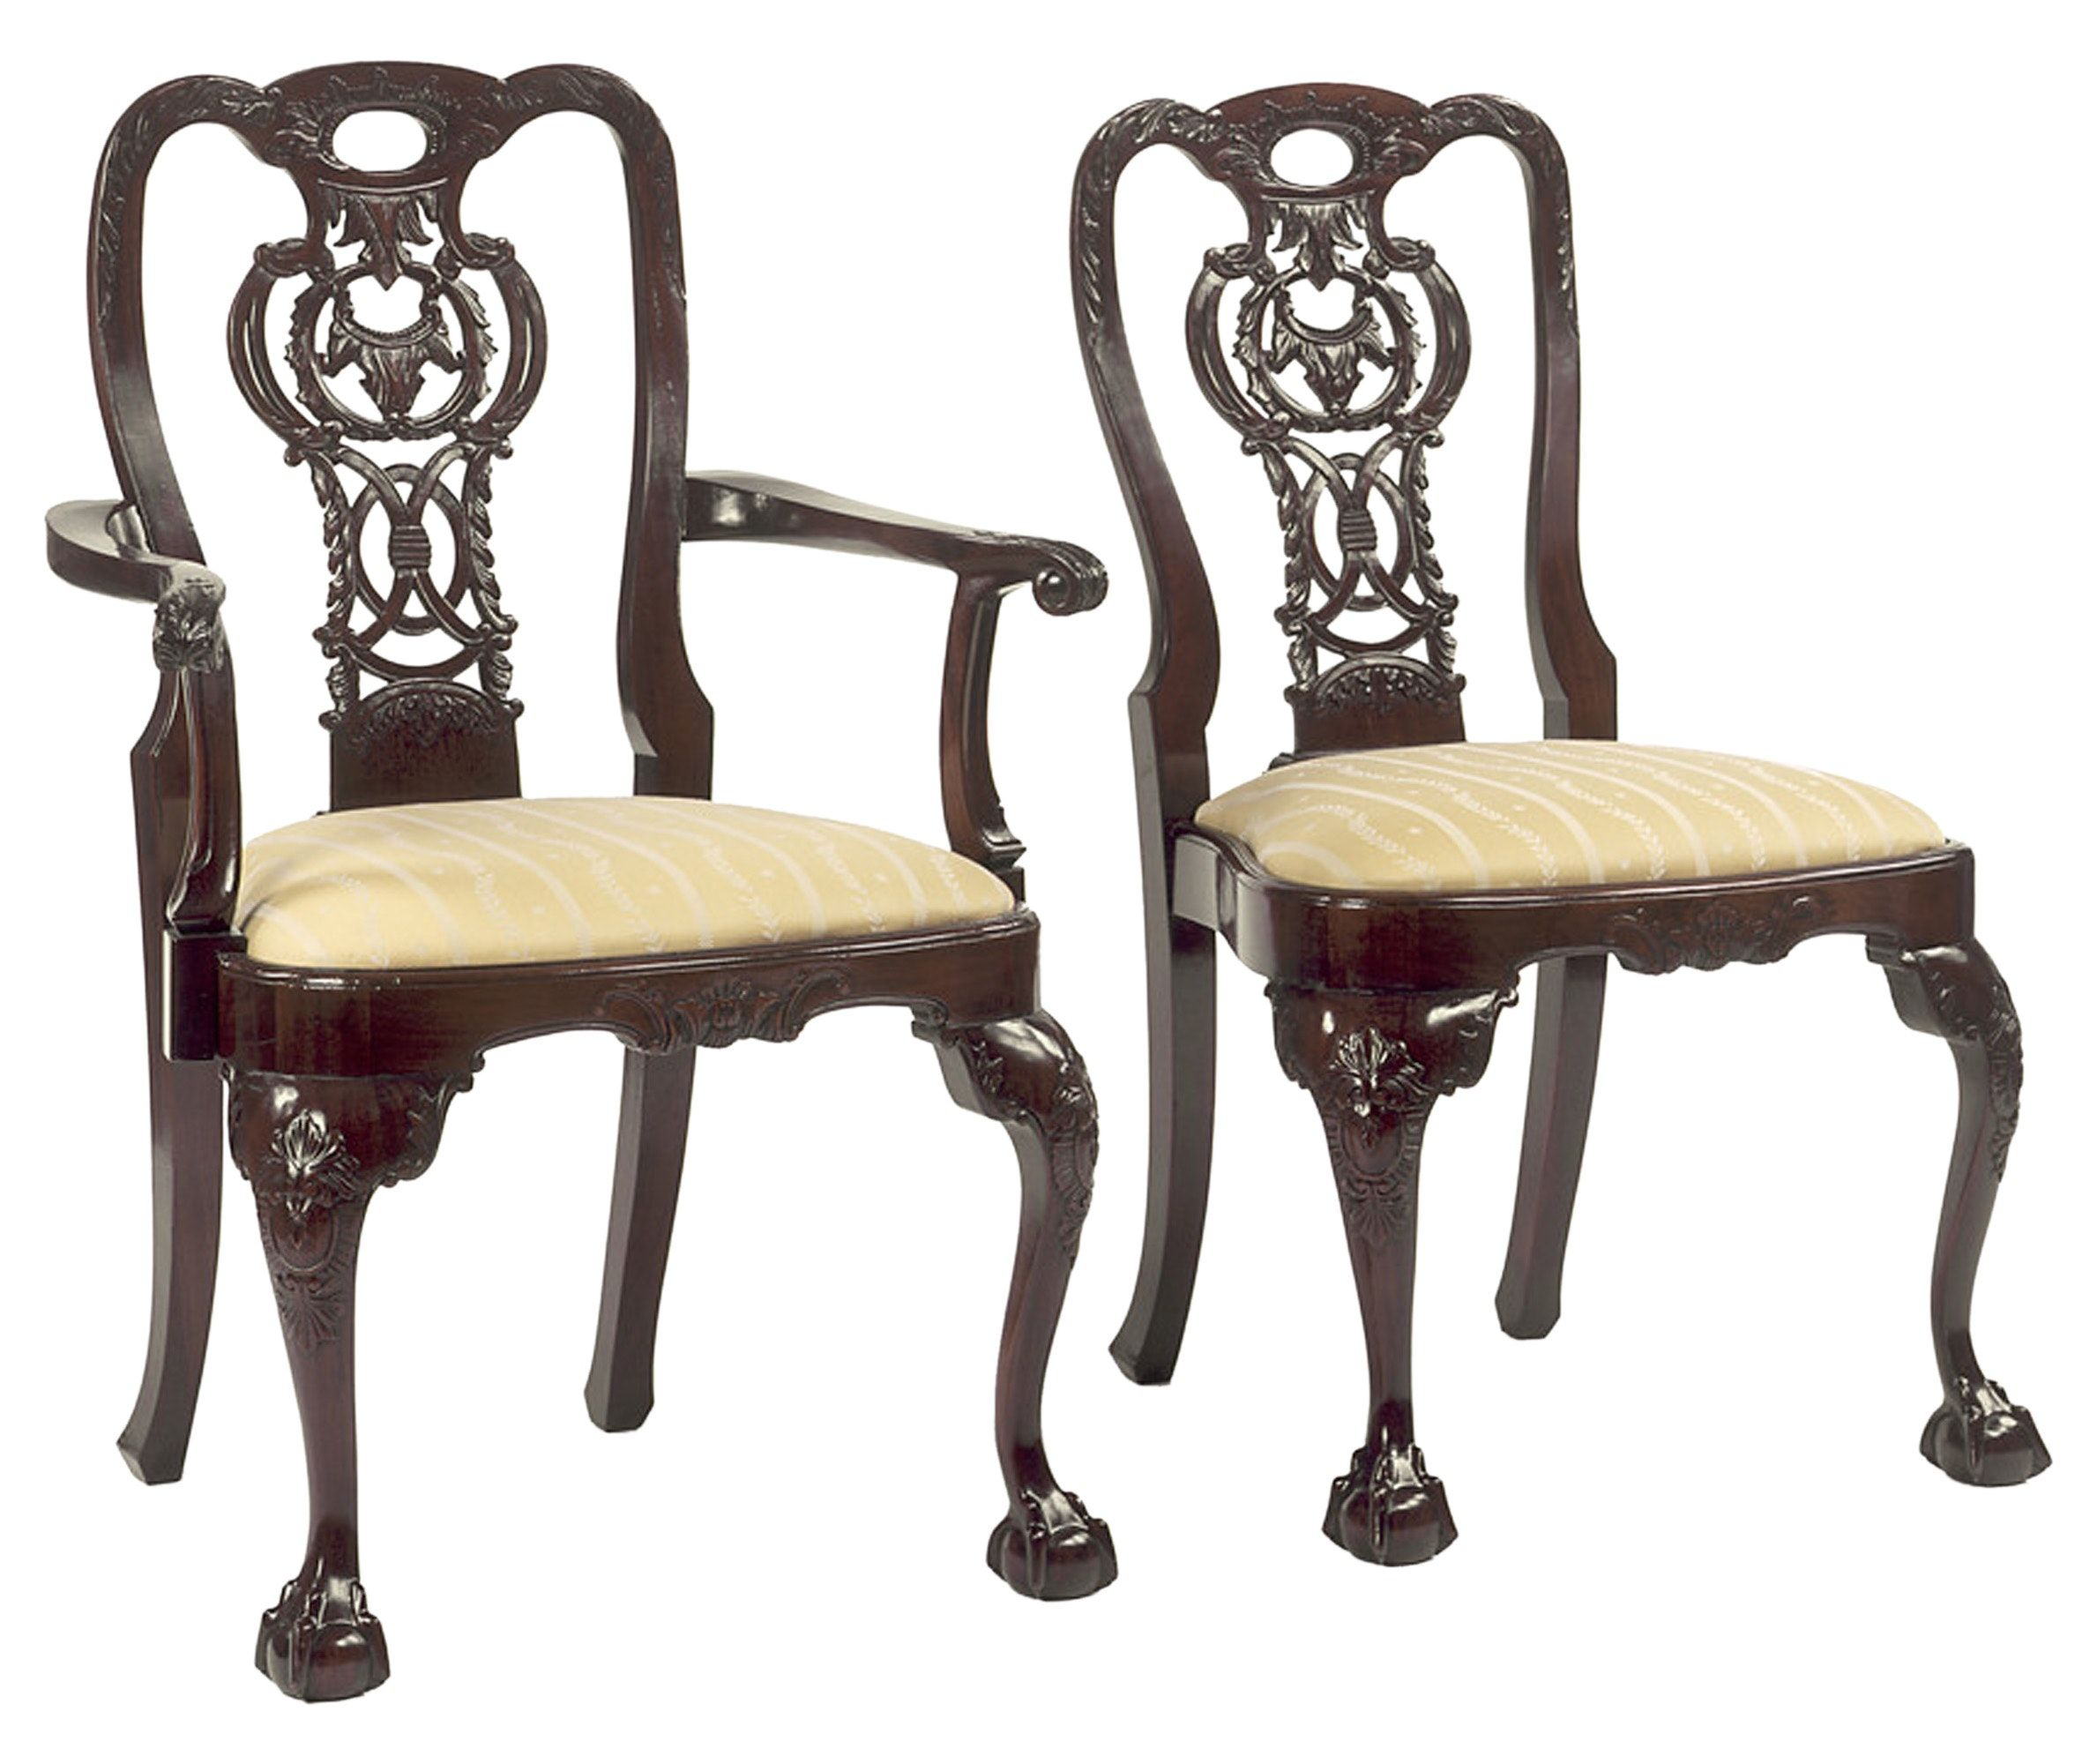 Merveilleux Buy Chippendale Style Rococco Back Design Chairs By The Federalist    Made To Order